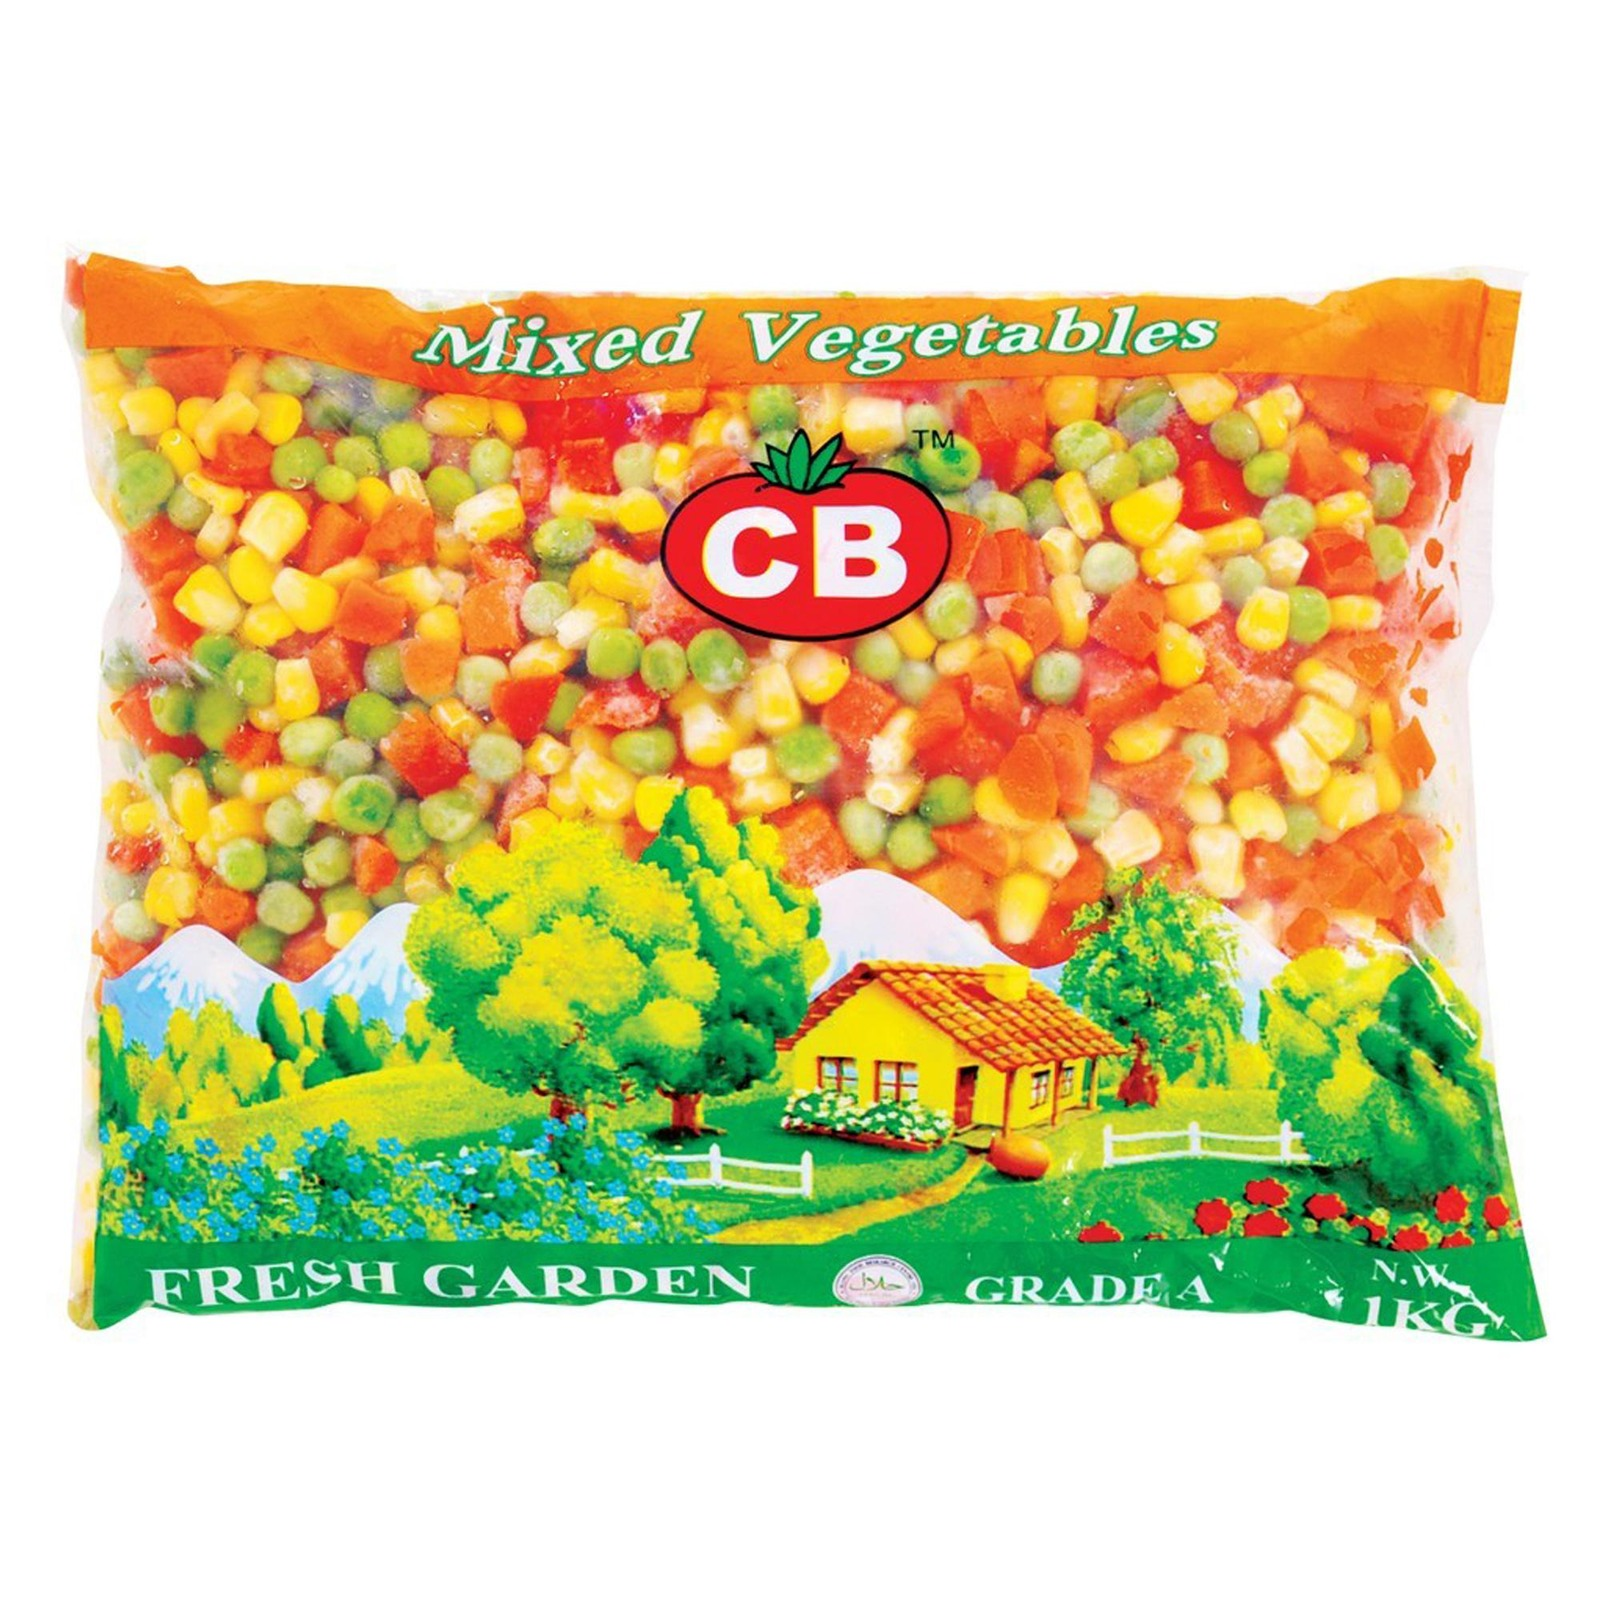 CB Mixed Vegetables